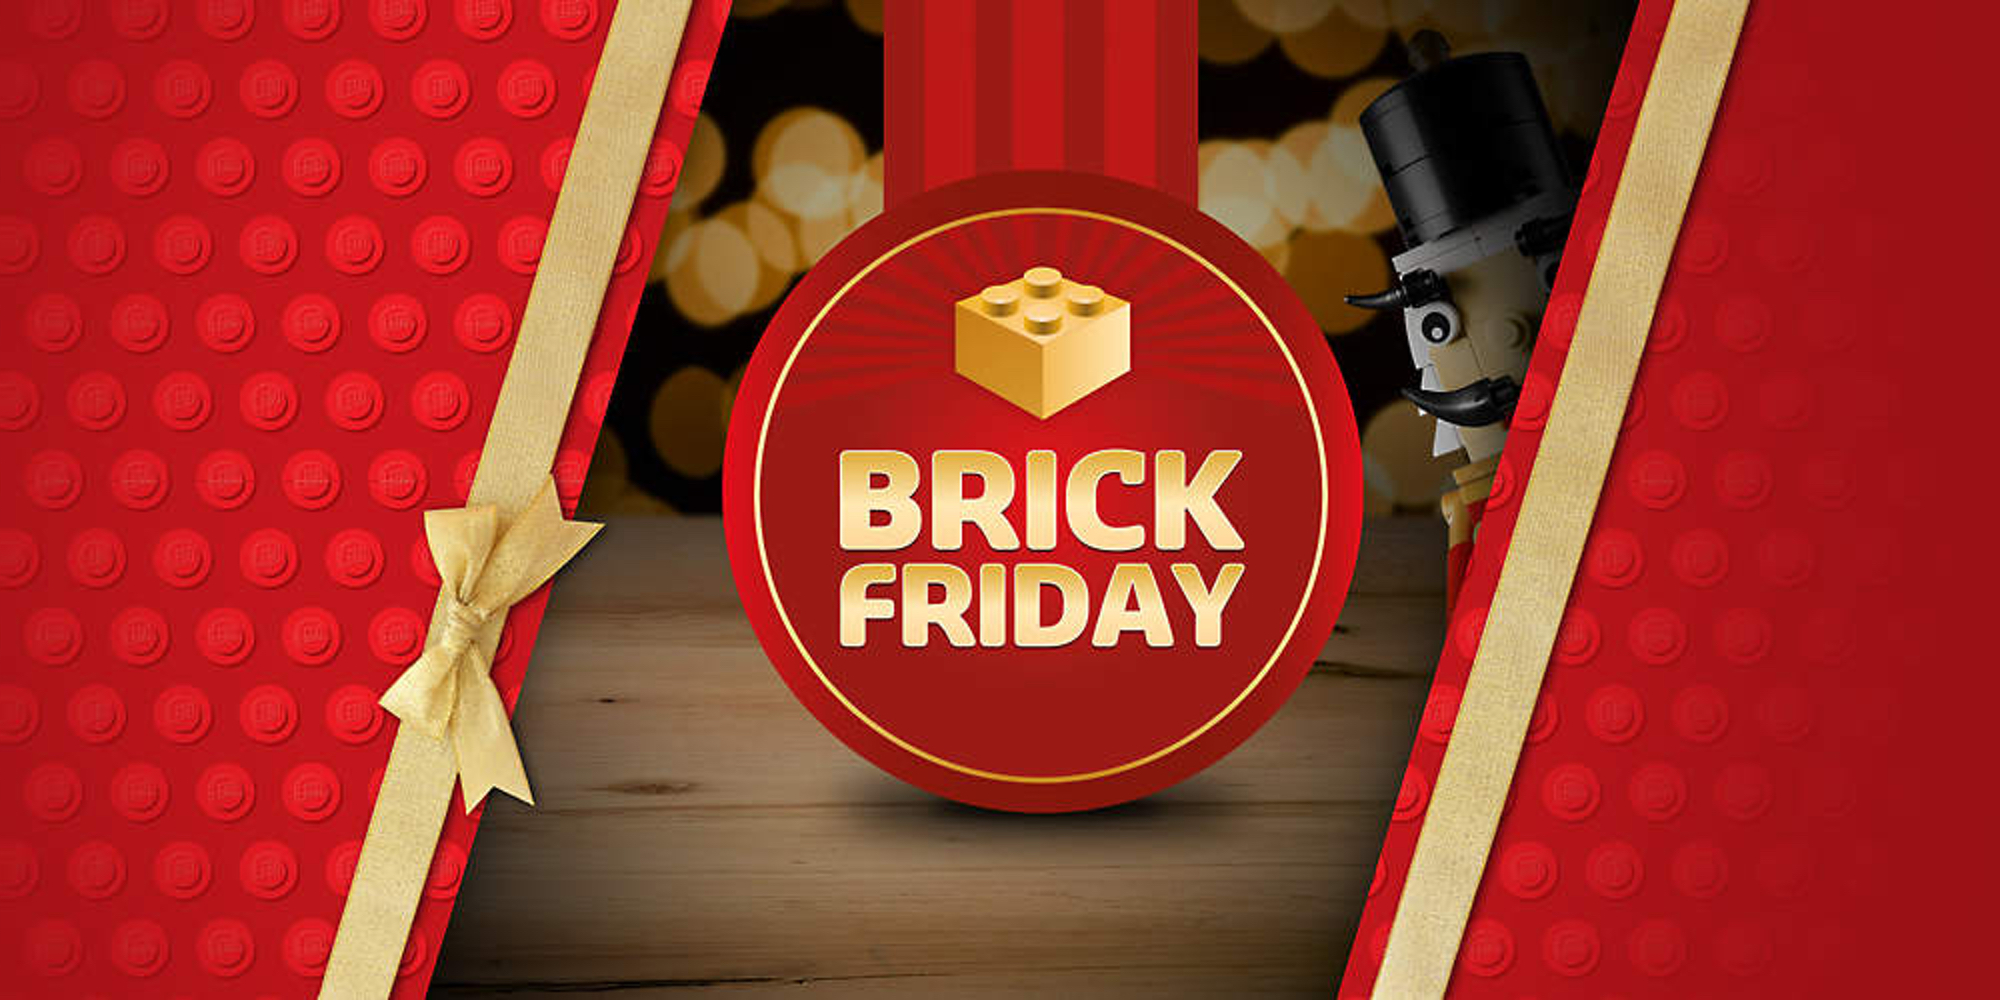 Lego Black Friday Predictions Exclusives Freebies More 9to5toys